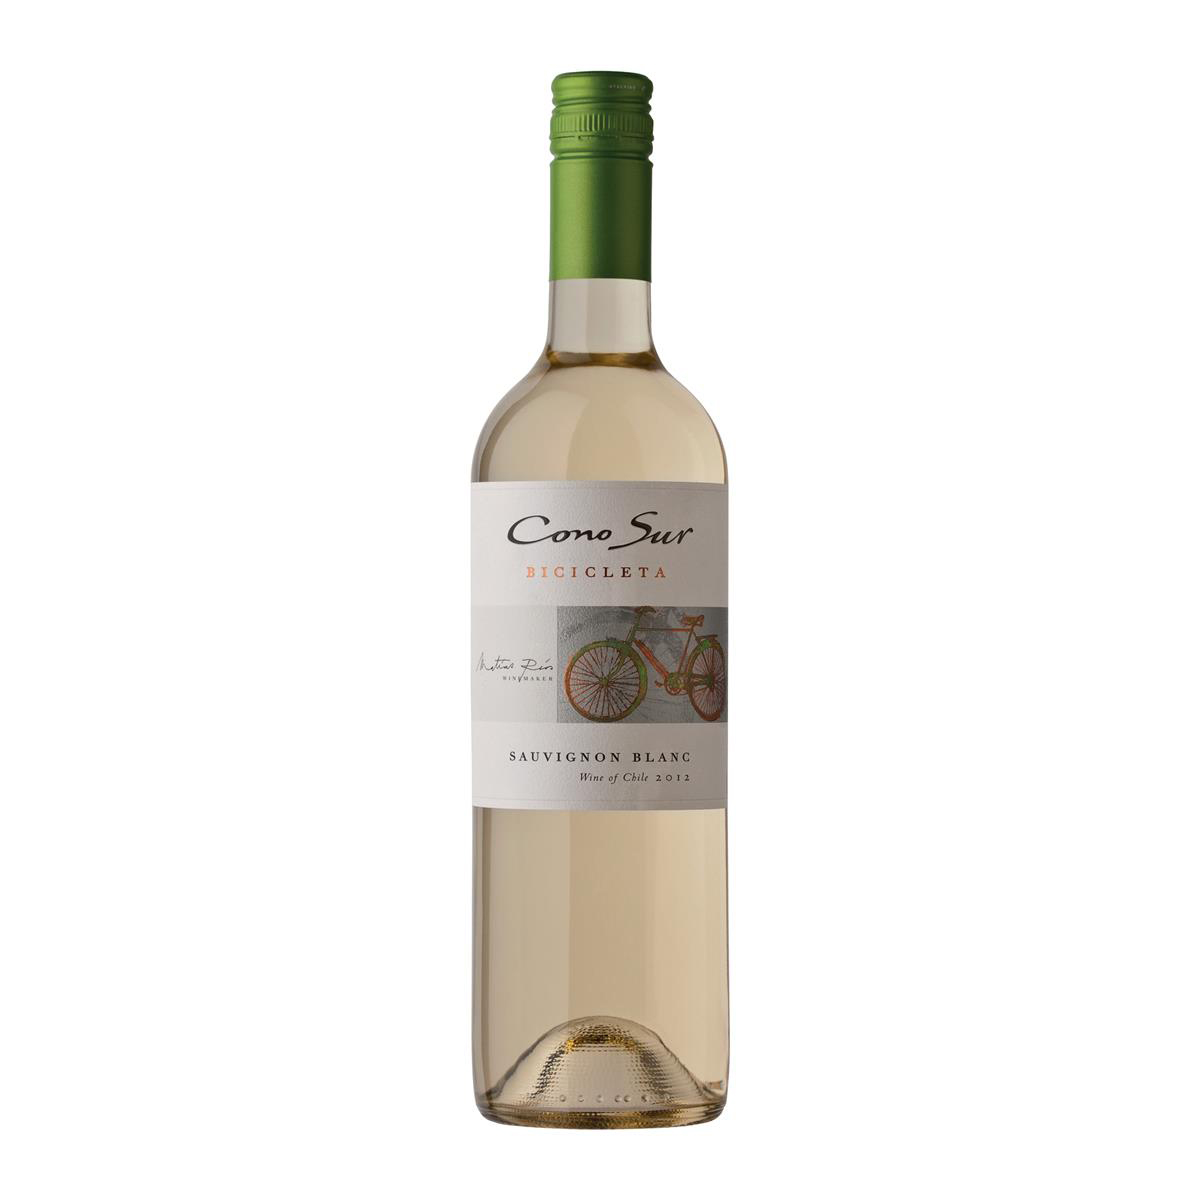 Cono Sur Bicicleta Sauvignon Blanc Central Valley 75cl Pack 6 *Up to 10 Day Leadtime* Ref 23637